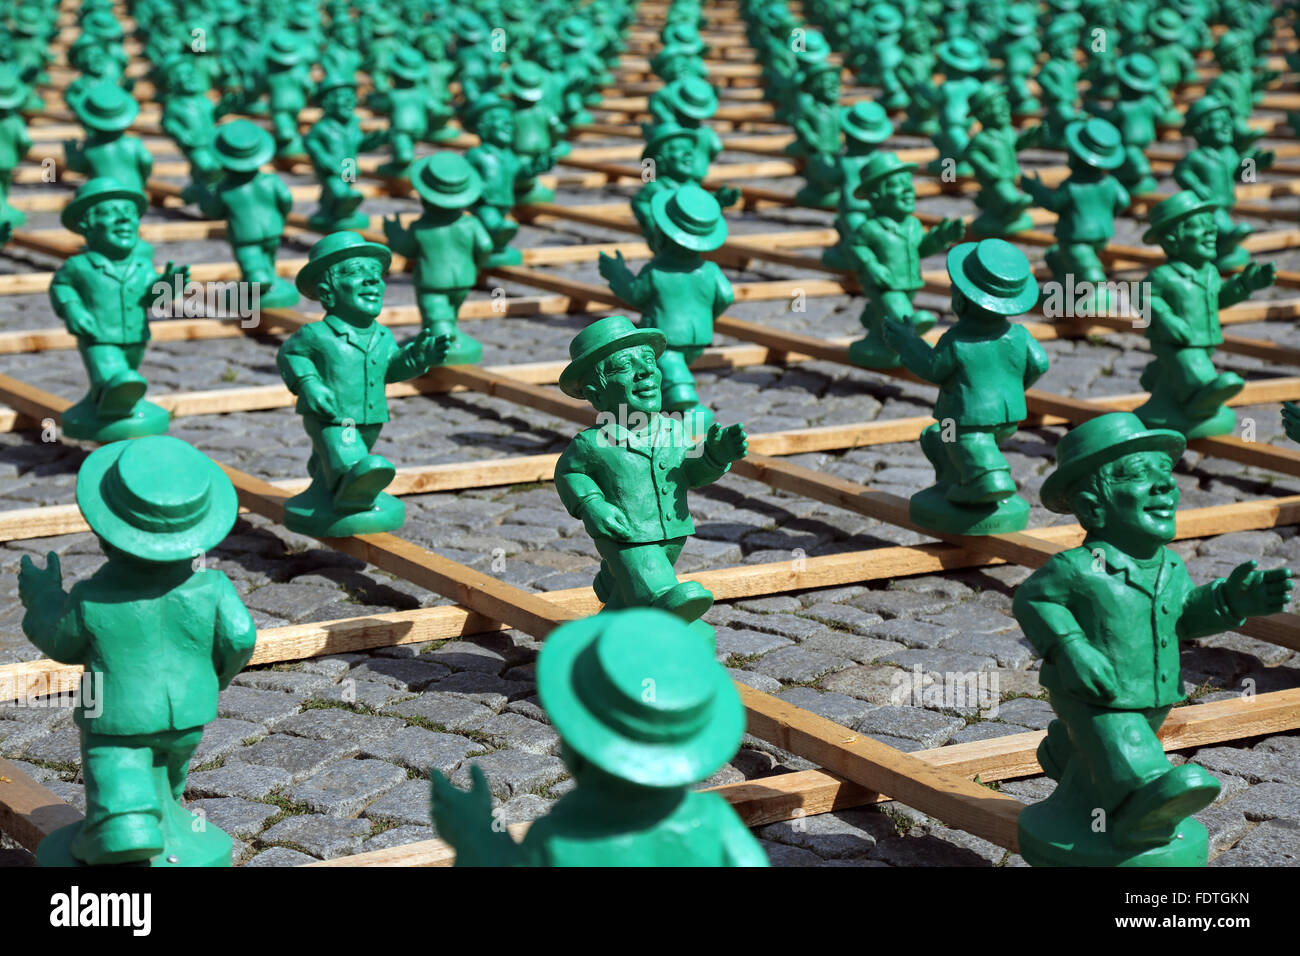 Schwerin, Germany, art project boundaries overcome Ottmar Hoerl - Stock Image